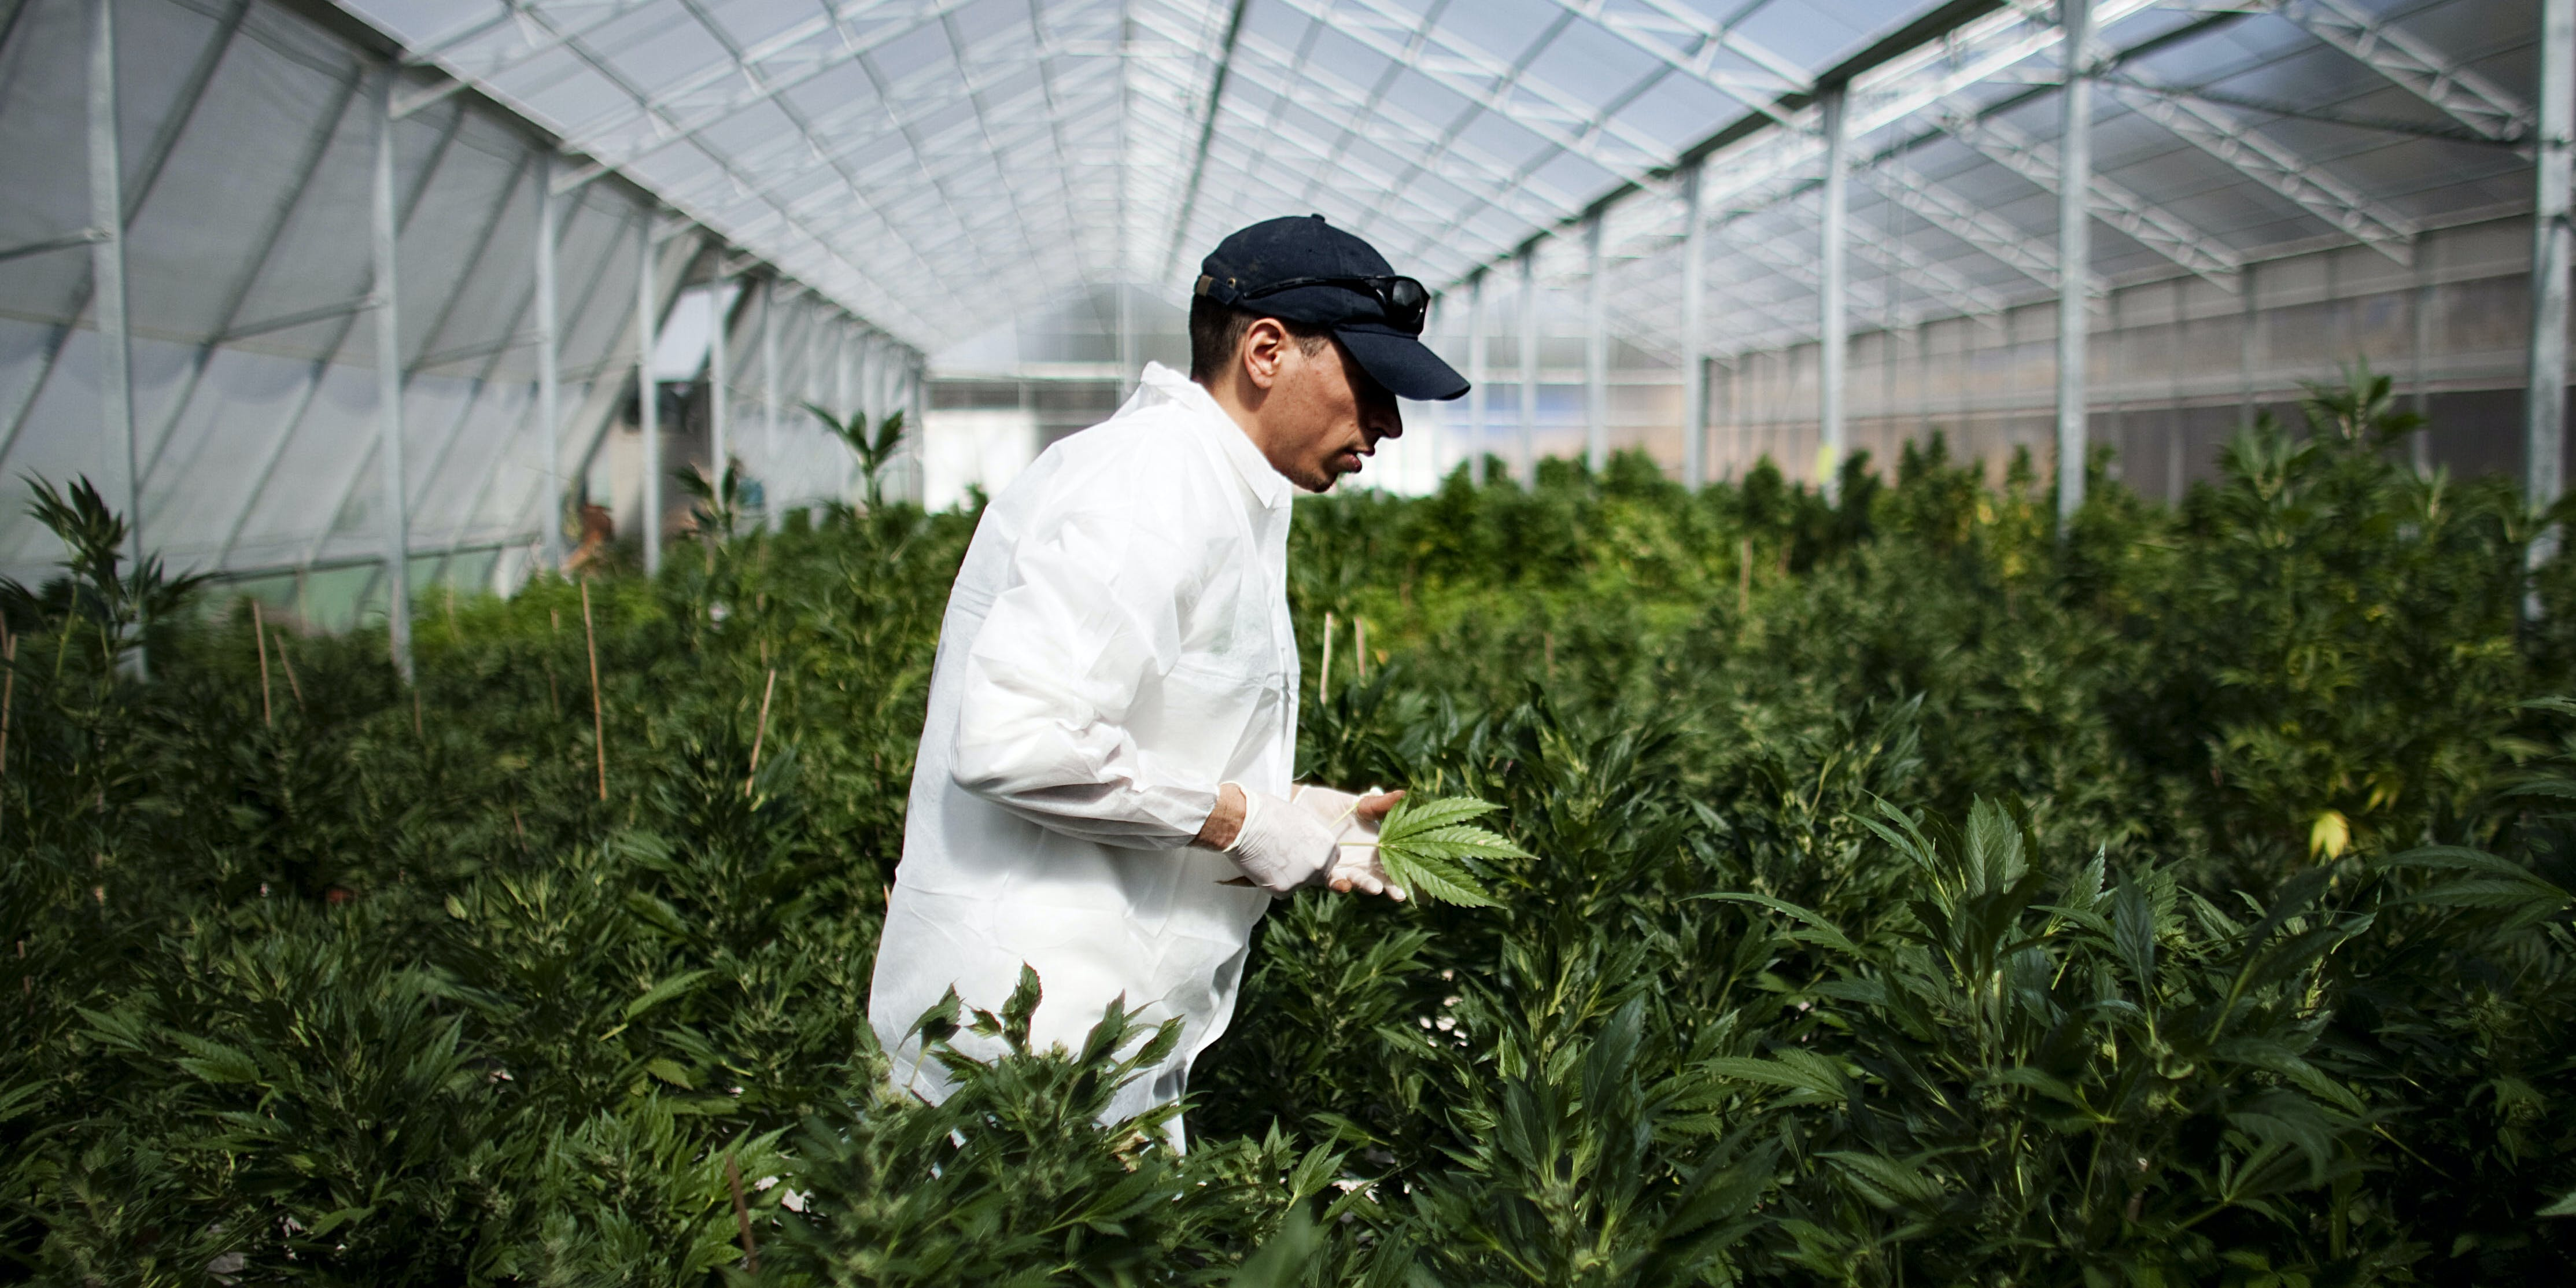 SAFED, ISRAEL - MARCH 07: A worker at a cannabis greenhouse at the cultivation facility of the Tikun Olam company on March 7, 2011 near the northern city of Safed, Israel. (Photo by Uriel Sinai/Getty Images)